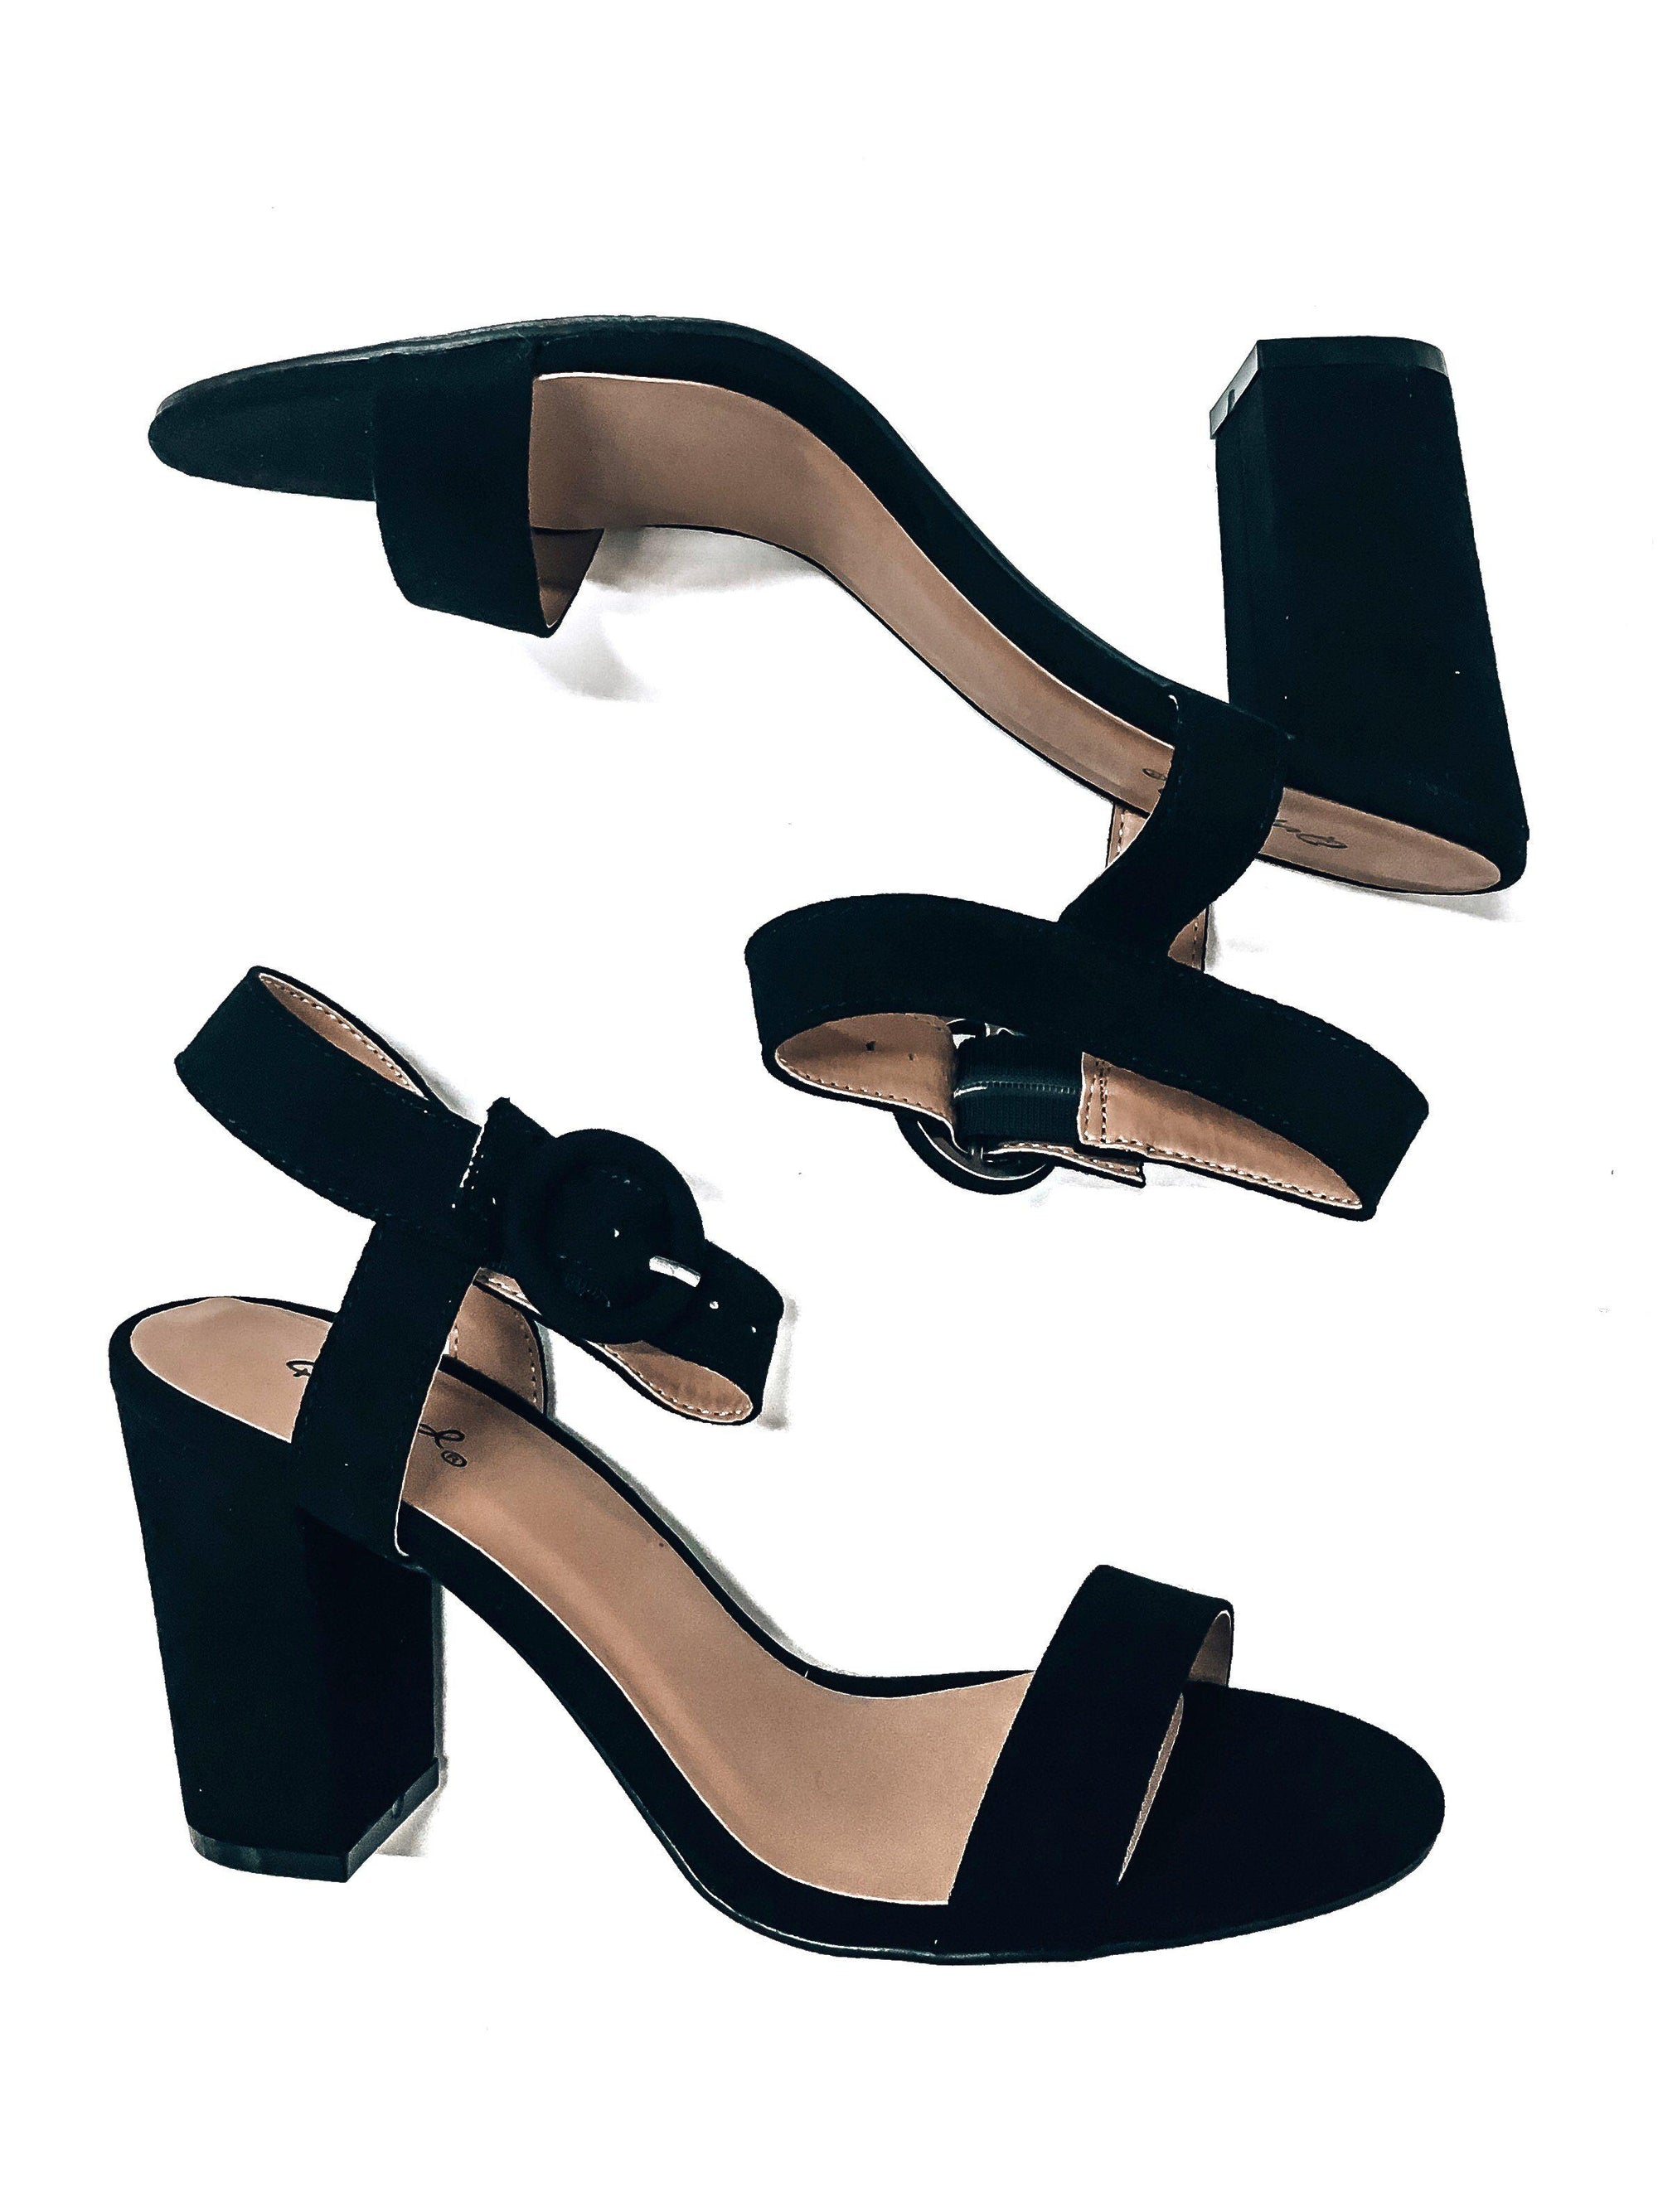 The Amanda-Women's SHOES-New Arrivals-Runway Seven